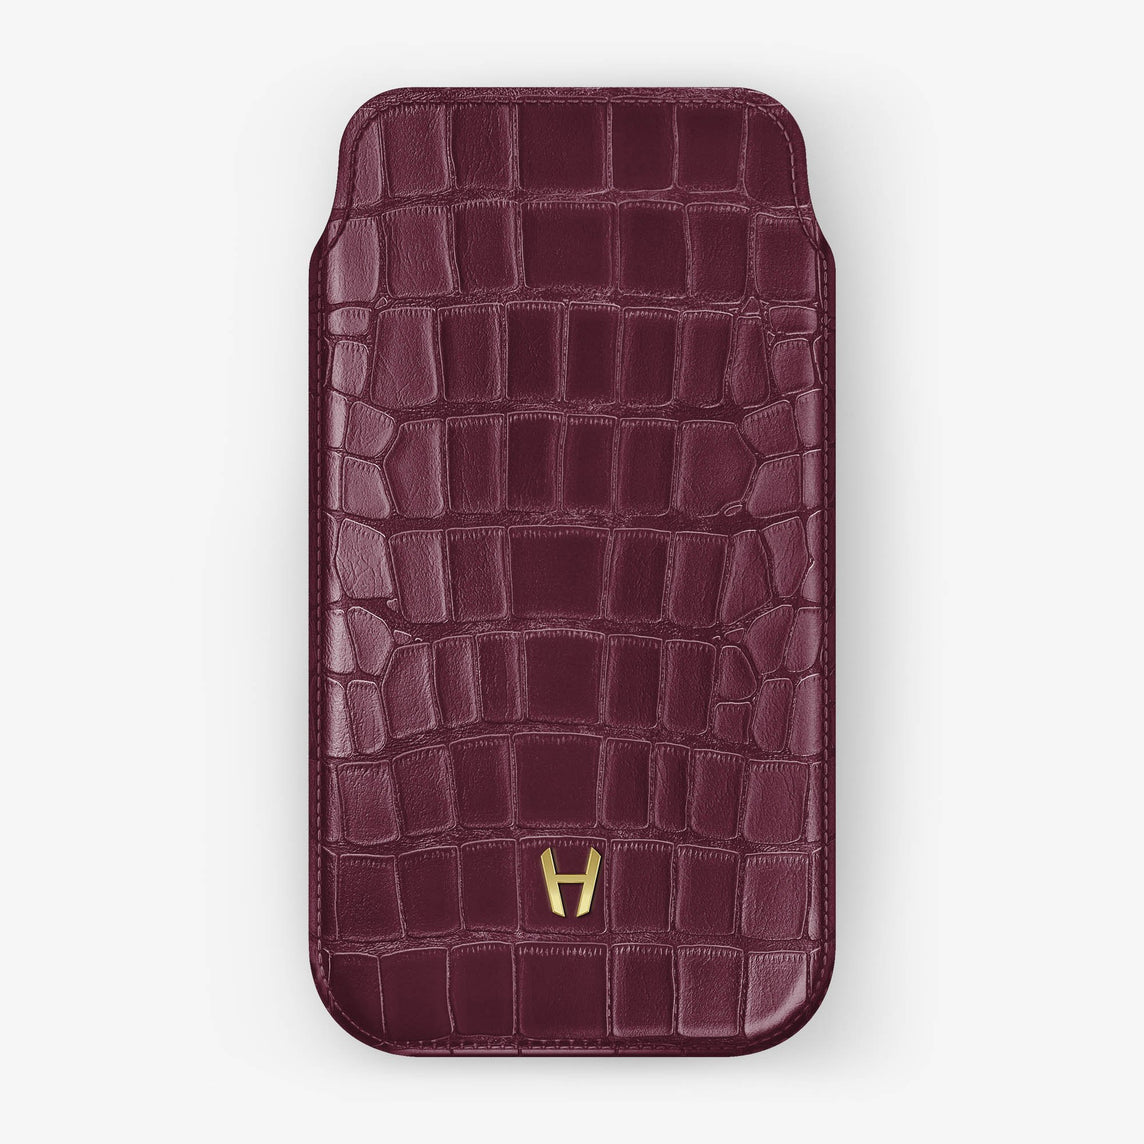 Alligator [iPhone Sleeve Case] [model:iphone-xr-case] [colour:burgundy] [finishing:yellow-gold]